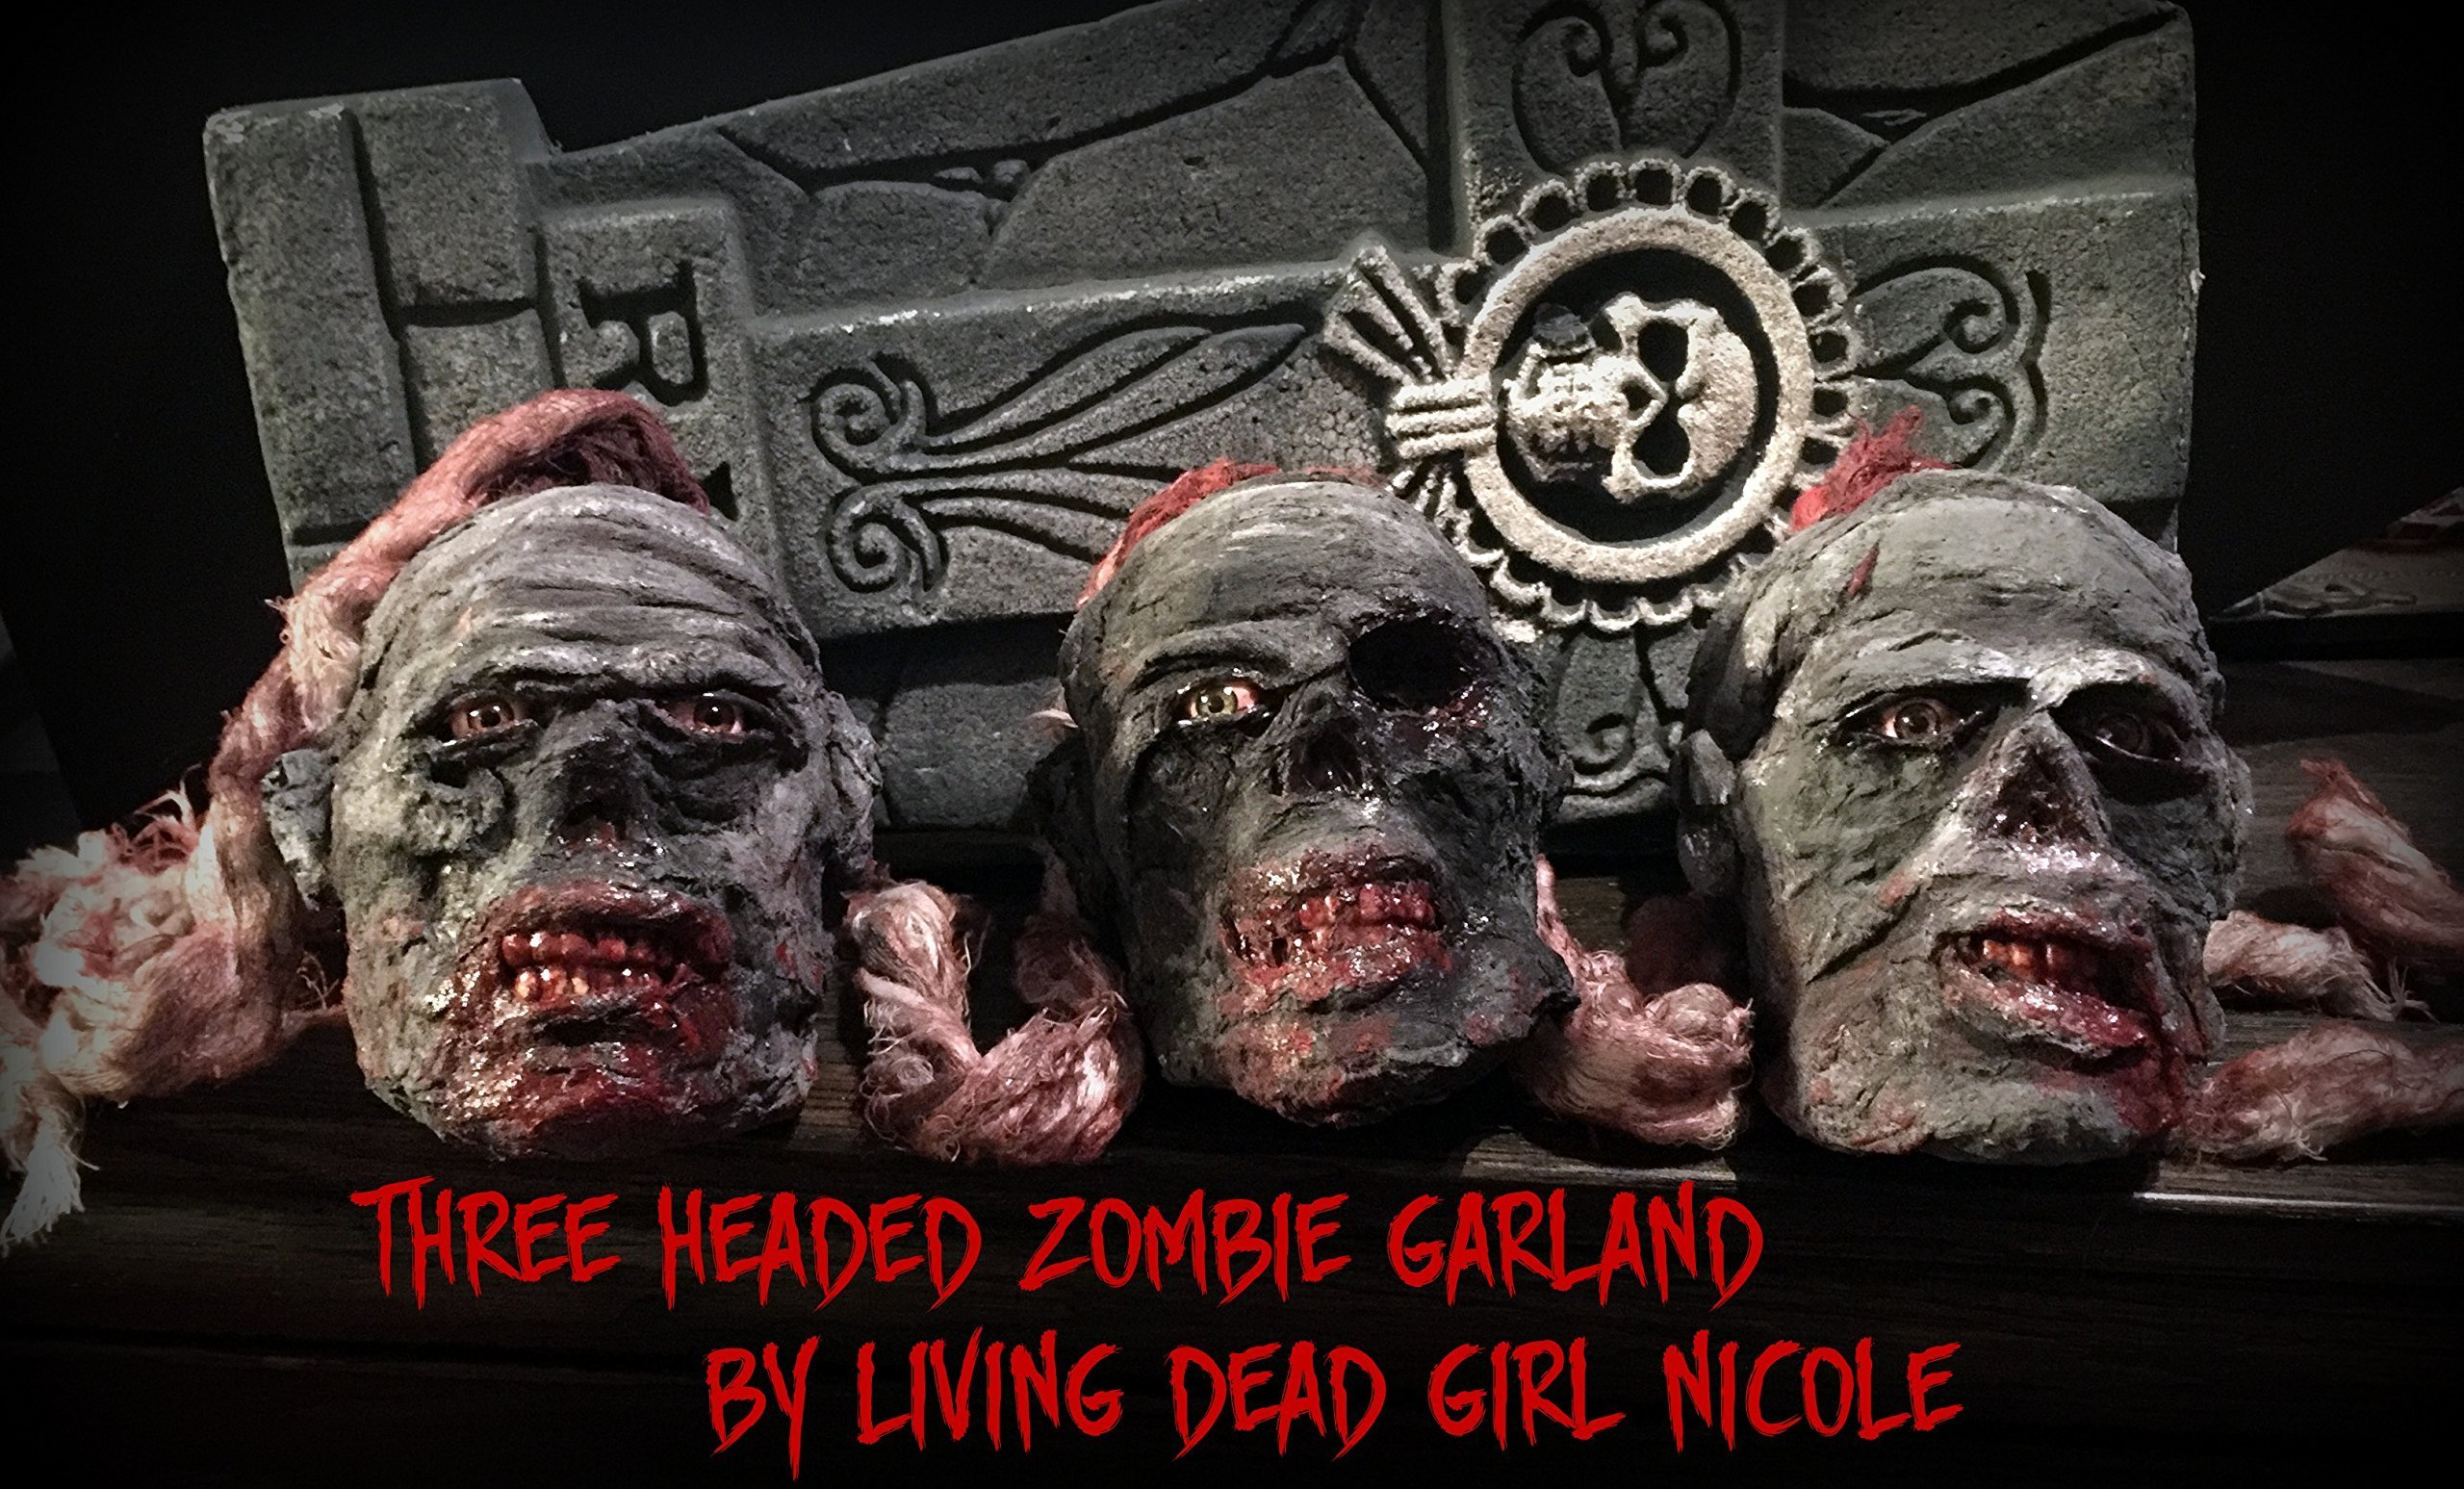 3 Headed Mini Zombie Garland Prop Decoration- Undead Corpse Halloween Horror - Handmade Dark Art